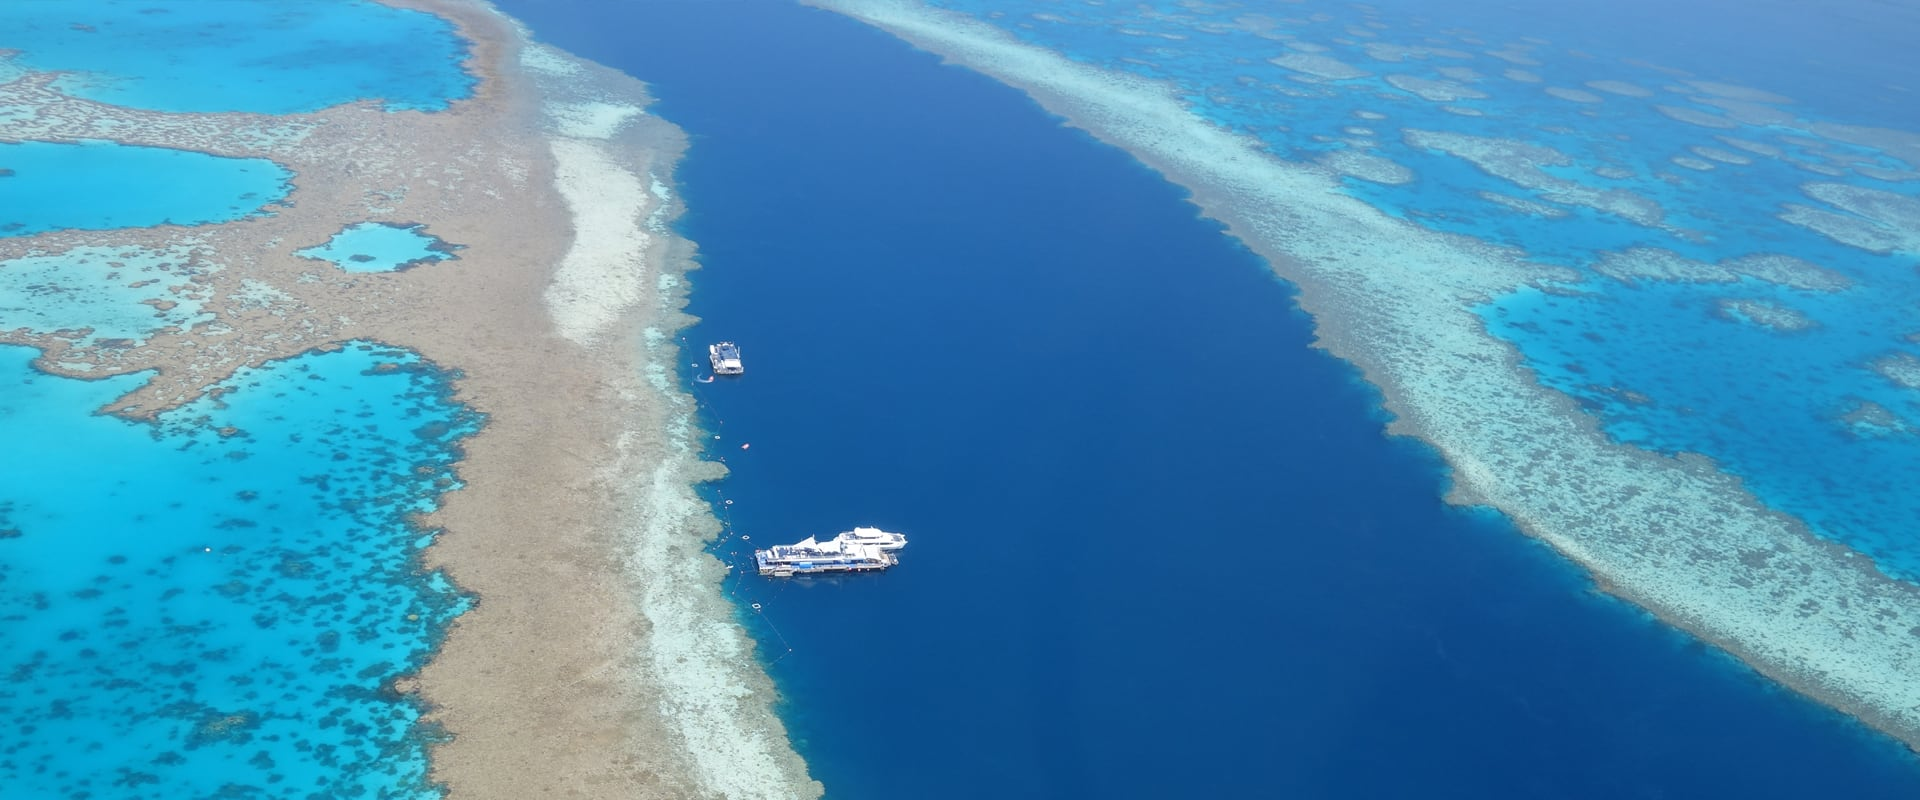 Outer Great Barrier Reef Liveaboard Diving